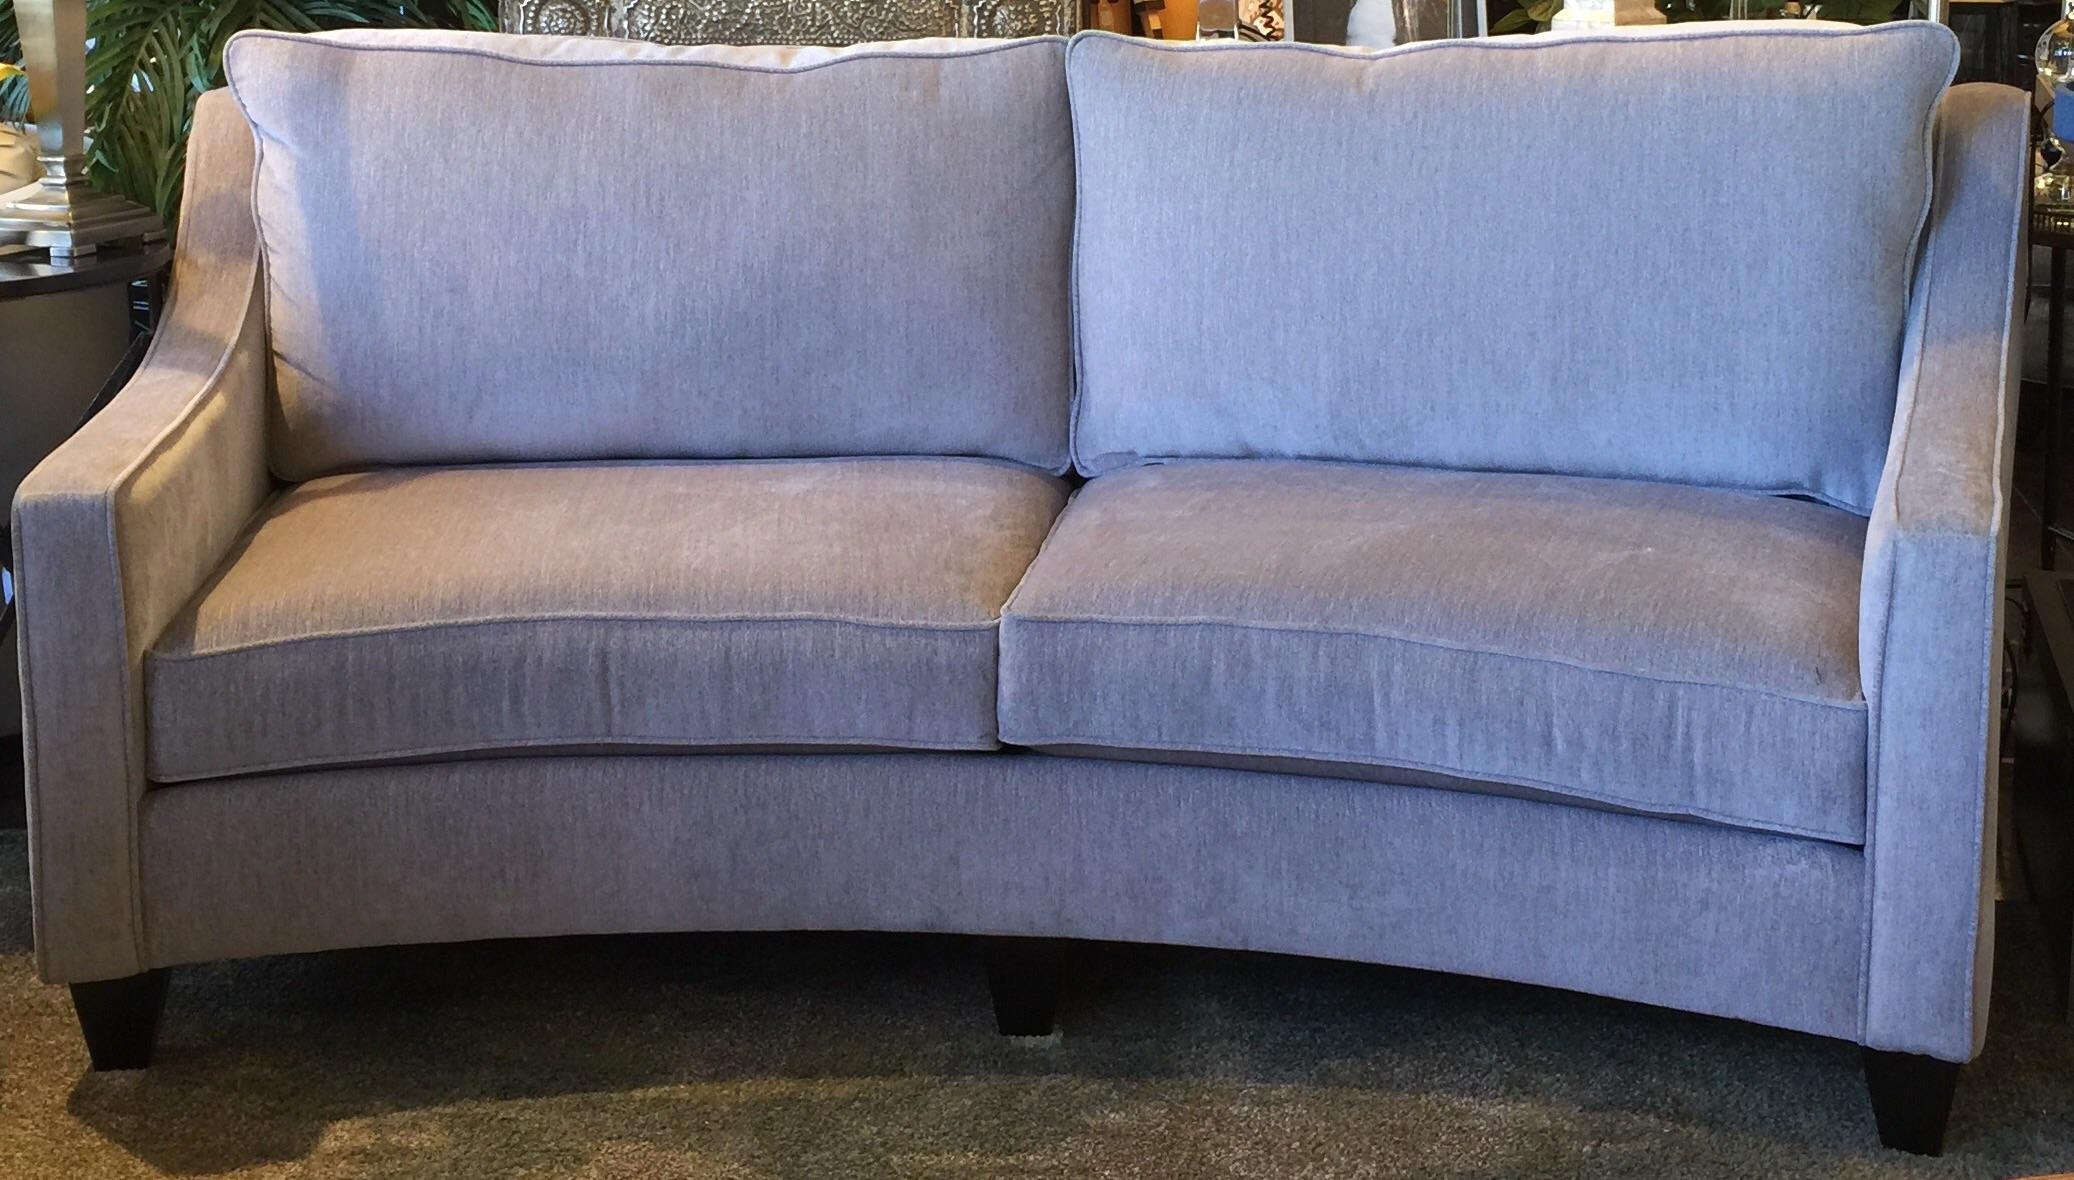 Custom Curved Gray Sofa Chairish